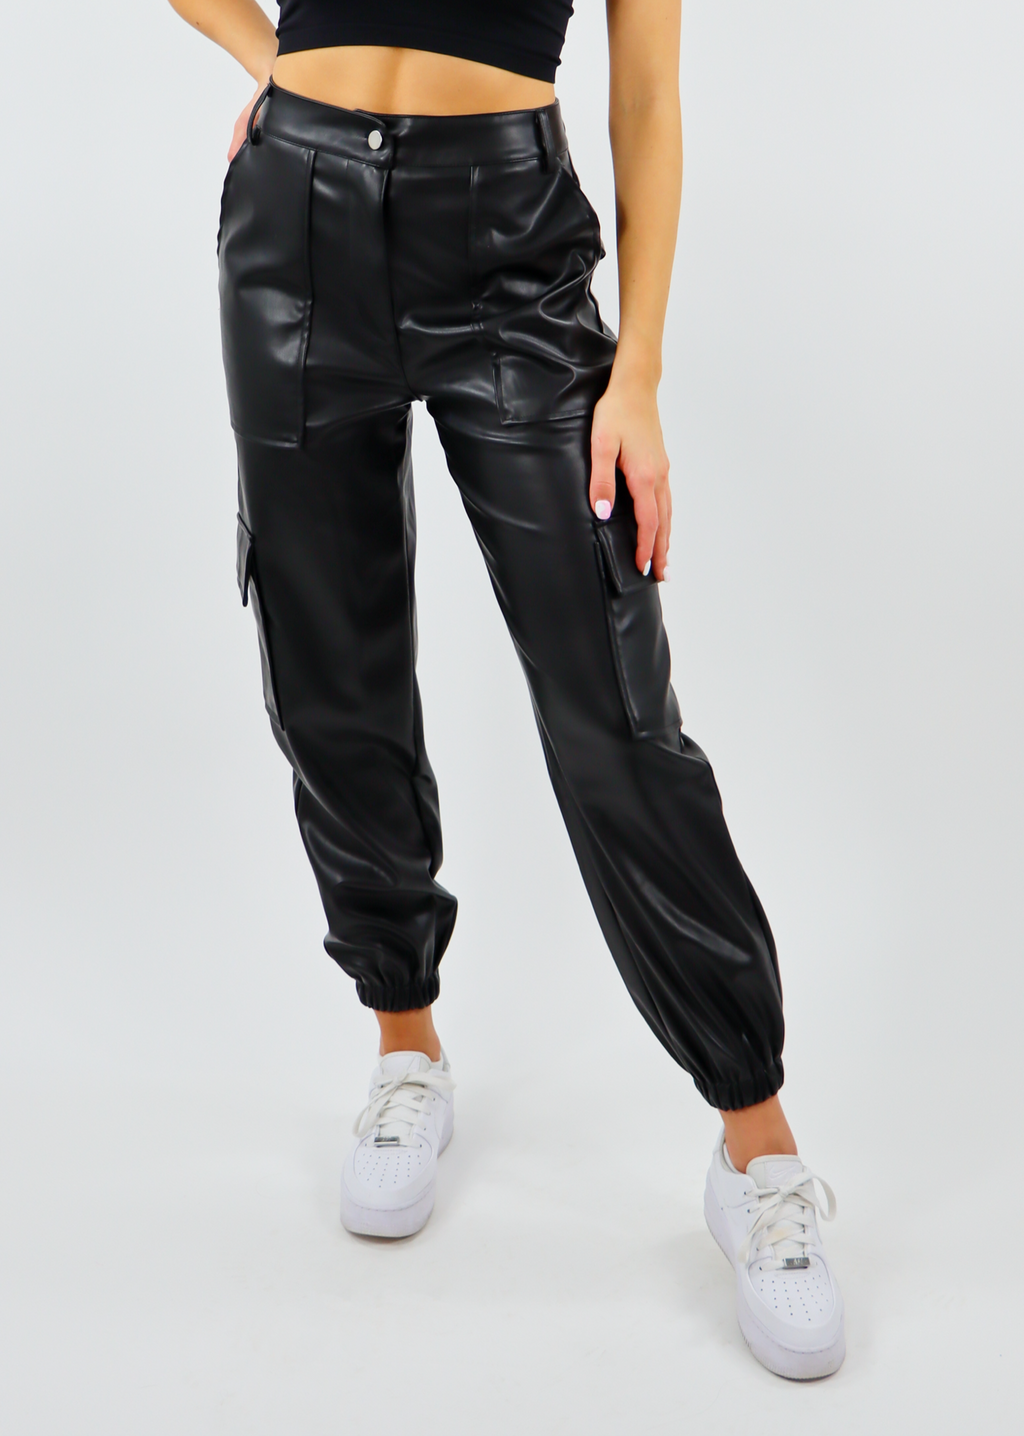 Bad Bleep Faux Leather Cargo Pants ★ Black